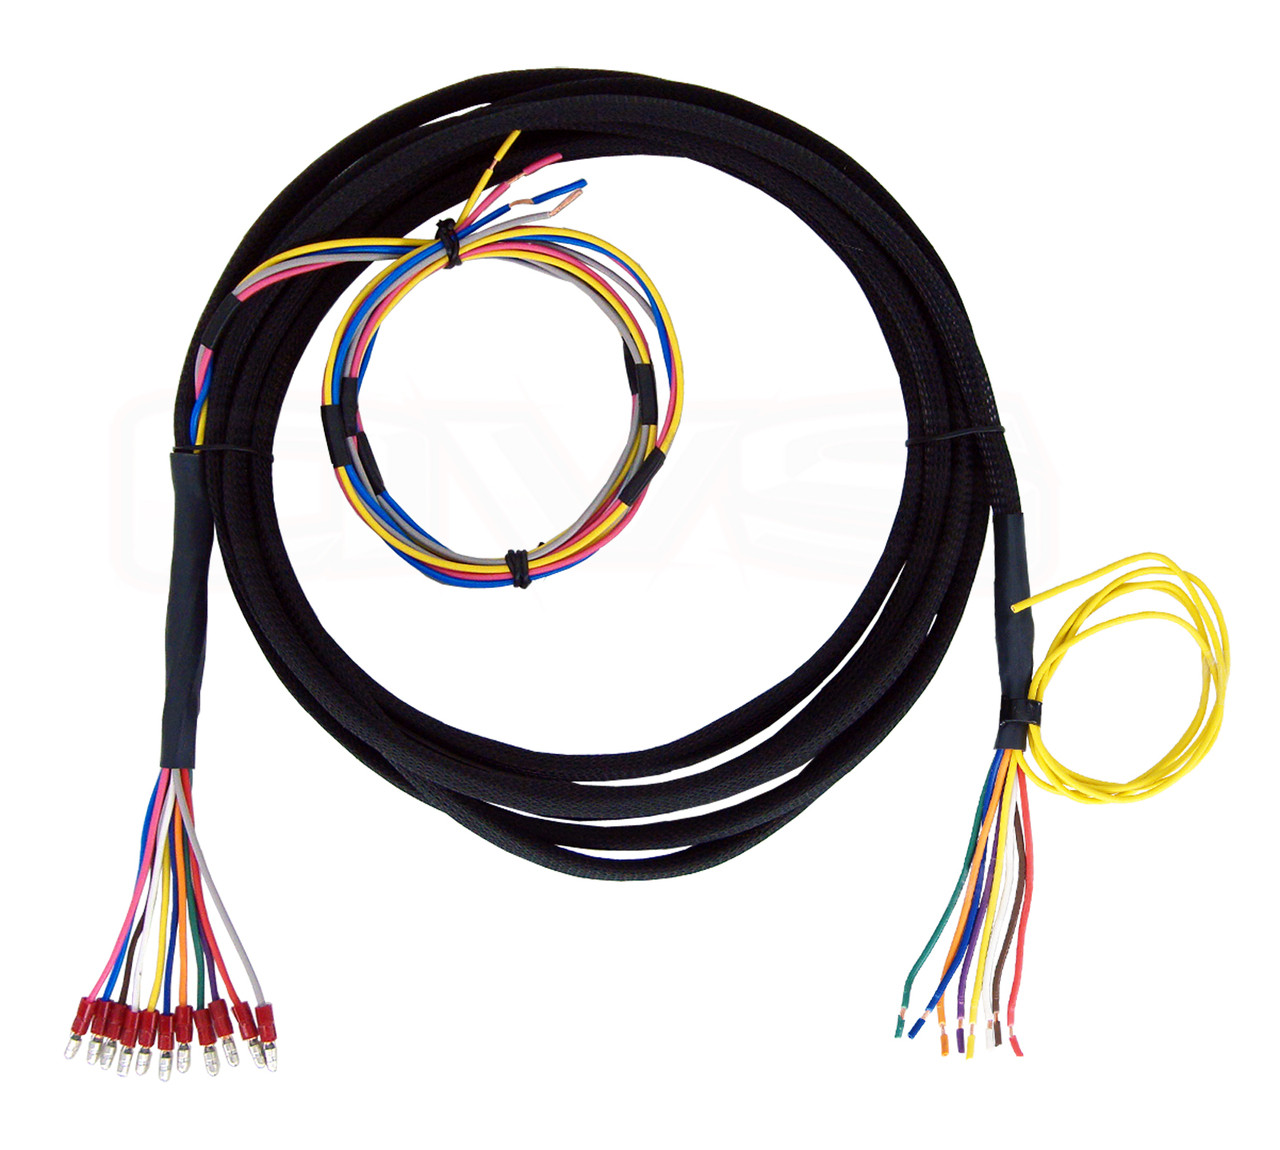 hight resolution of avs valve wiring harness 10 15 20 universal to avs 7 switch wire harness tubing 7 wire wiring harness